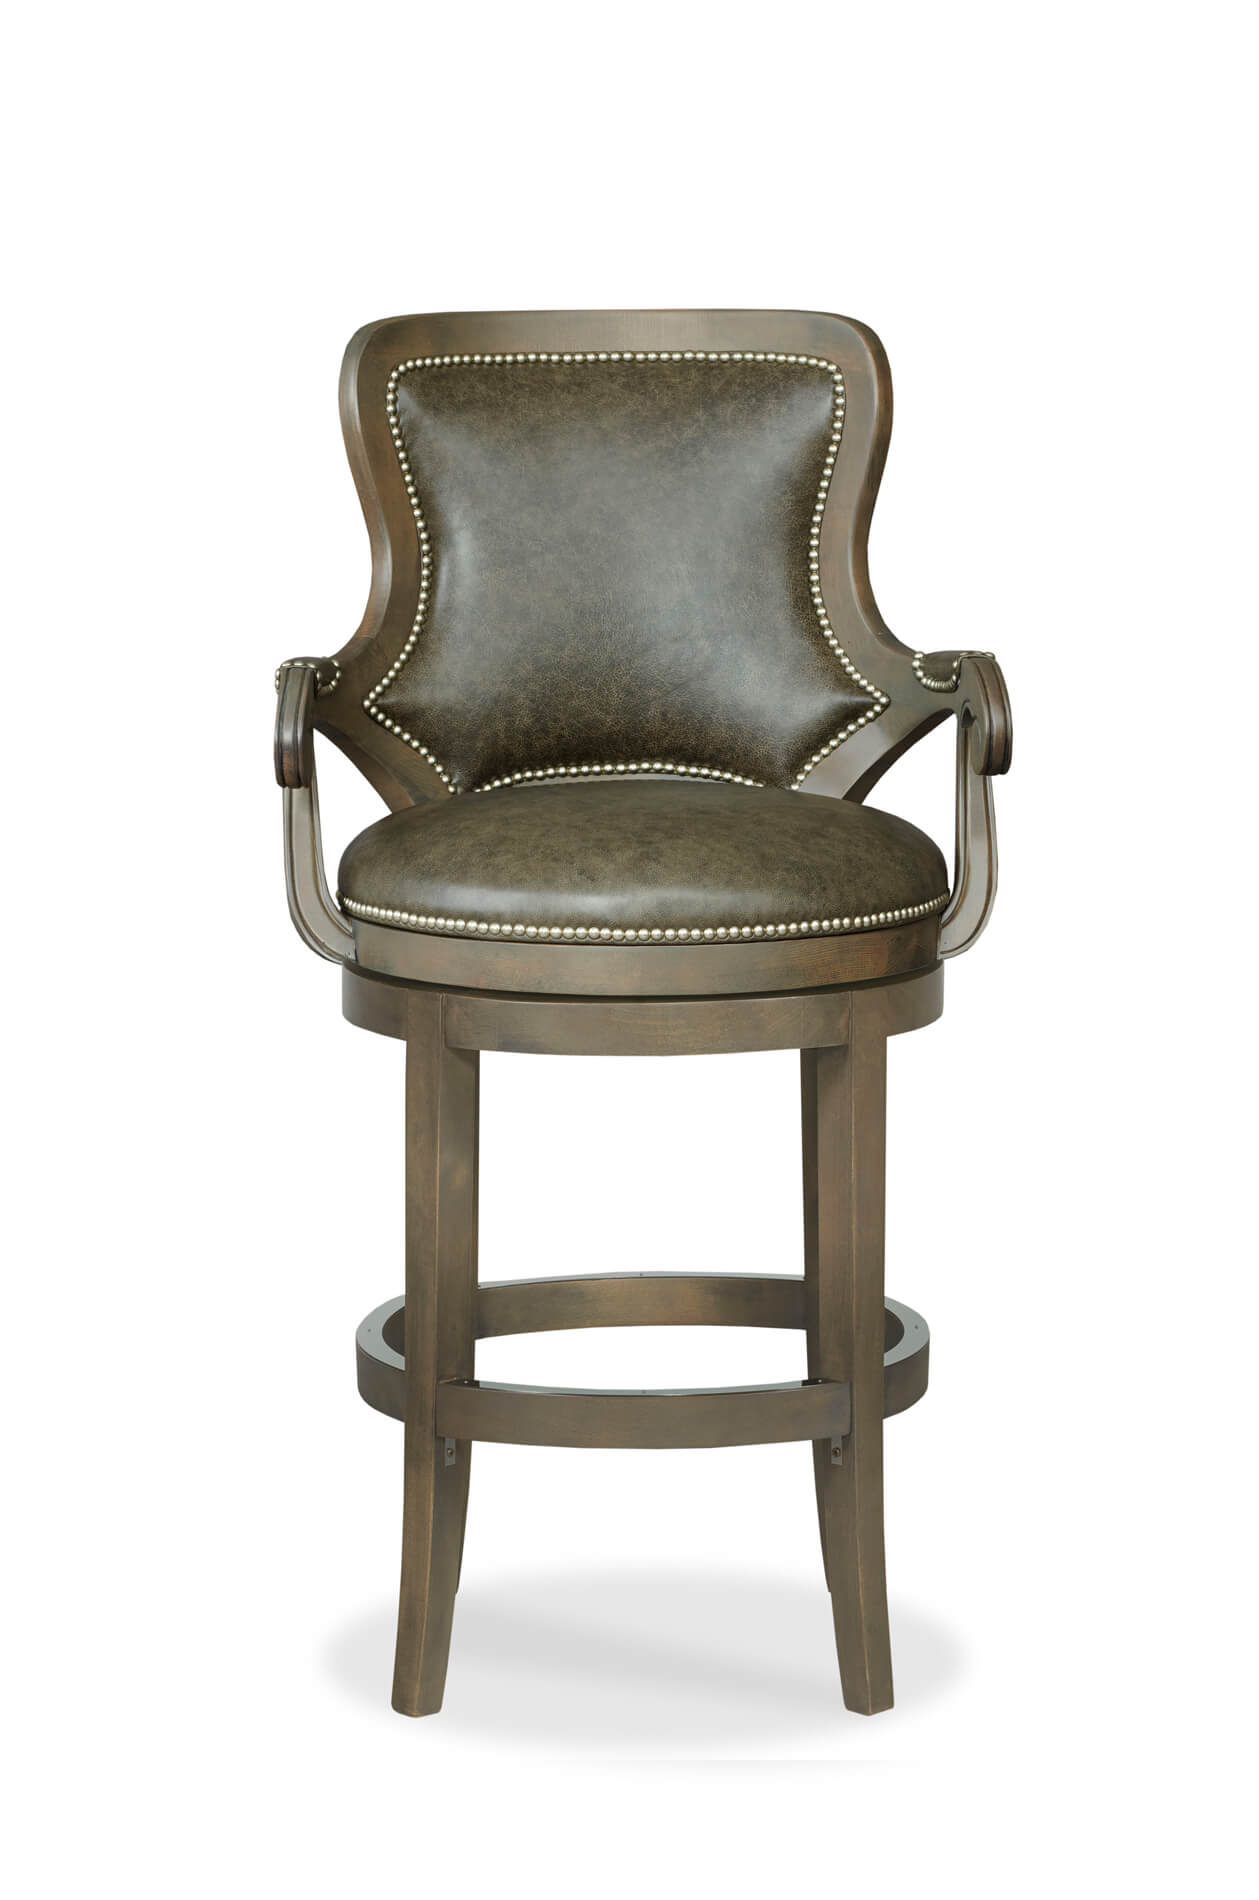 Buy Spritzer Upholstered Wood Swivel Bar Stool W Arms Free Shipping